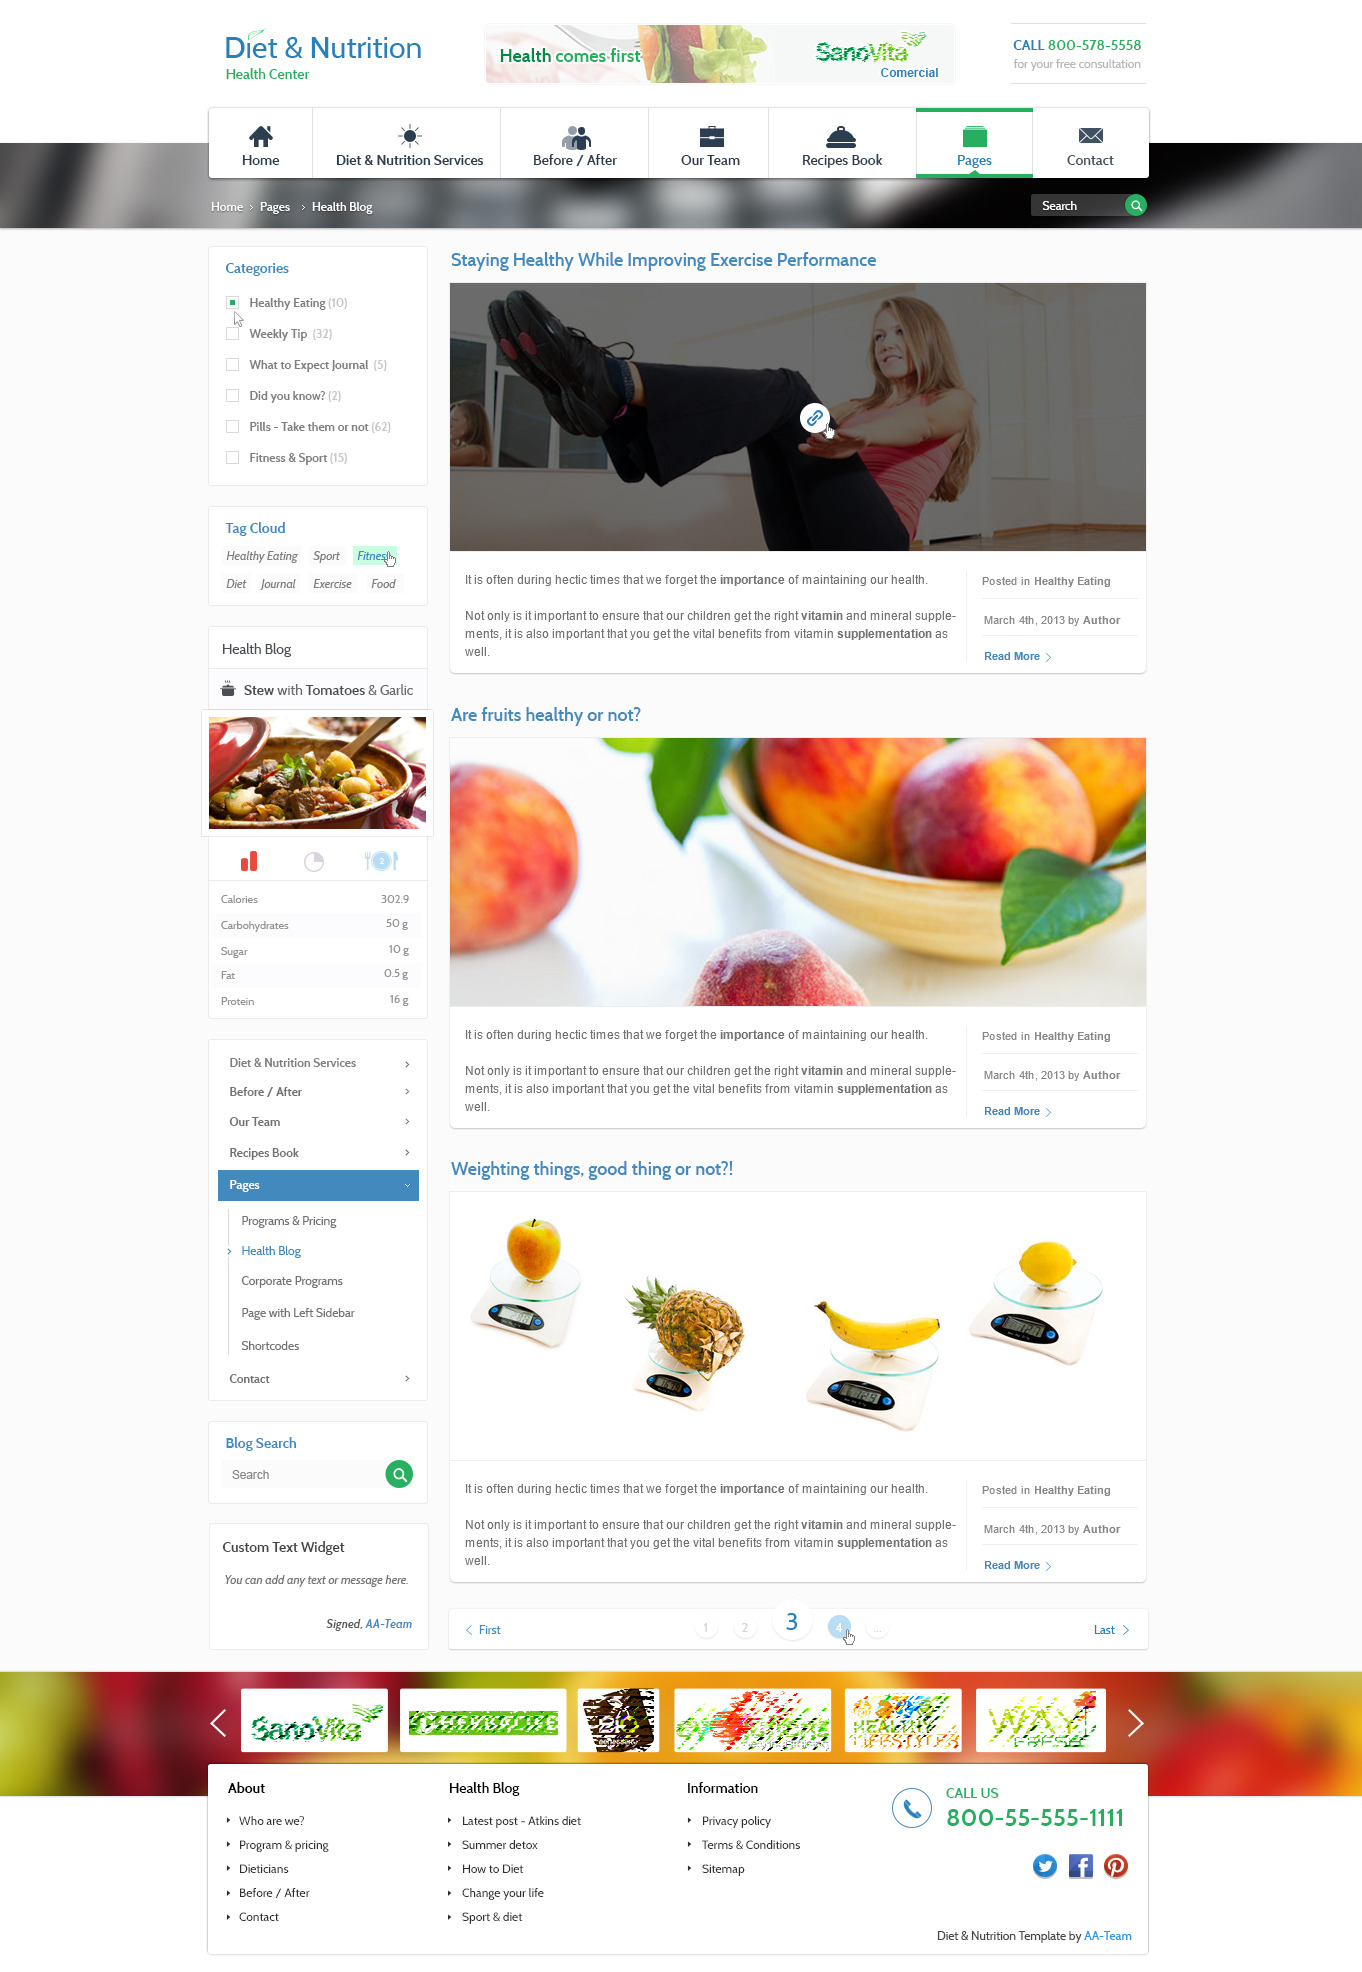 Diet & Nutrition Health Center – PSD Template